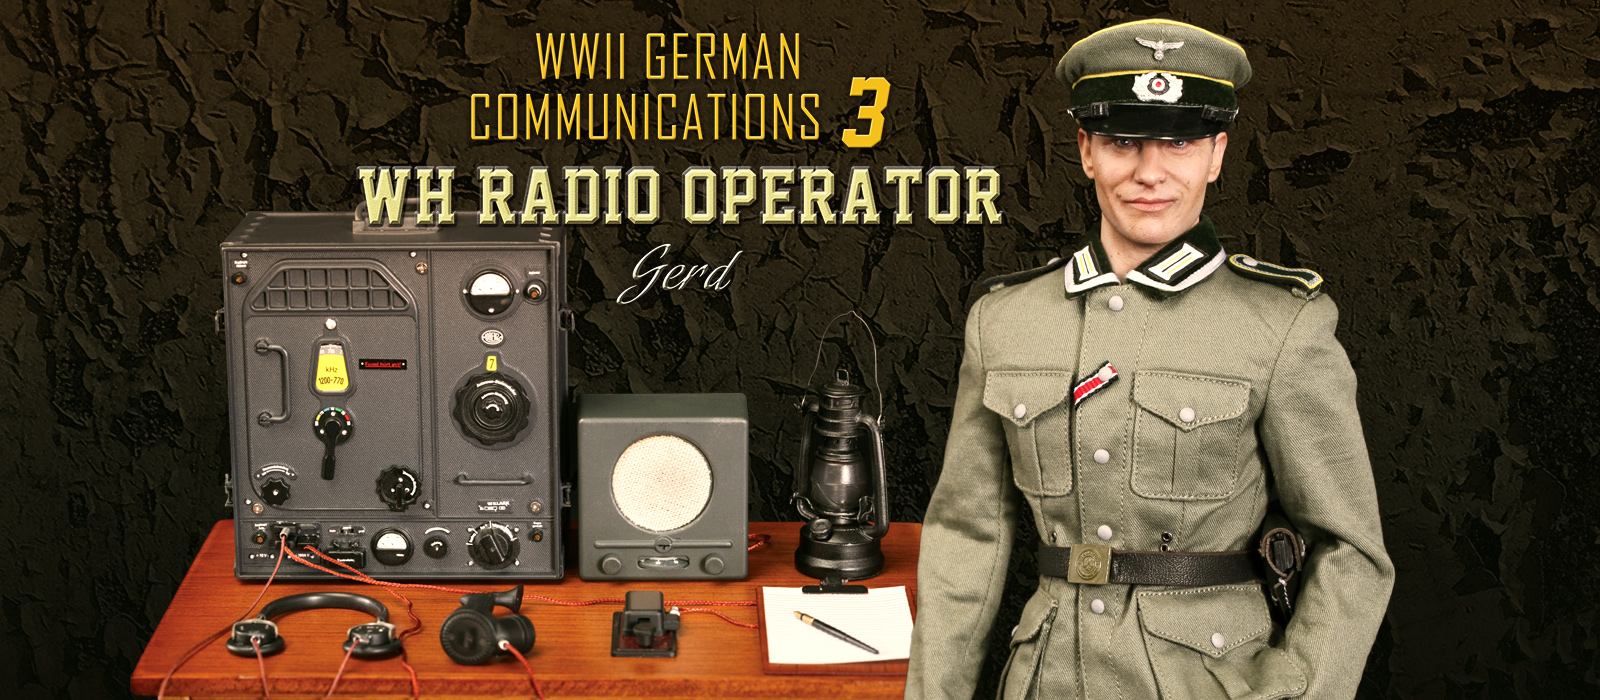 WWII German Communication 3 WH Radio Operator Gerd